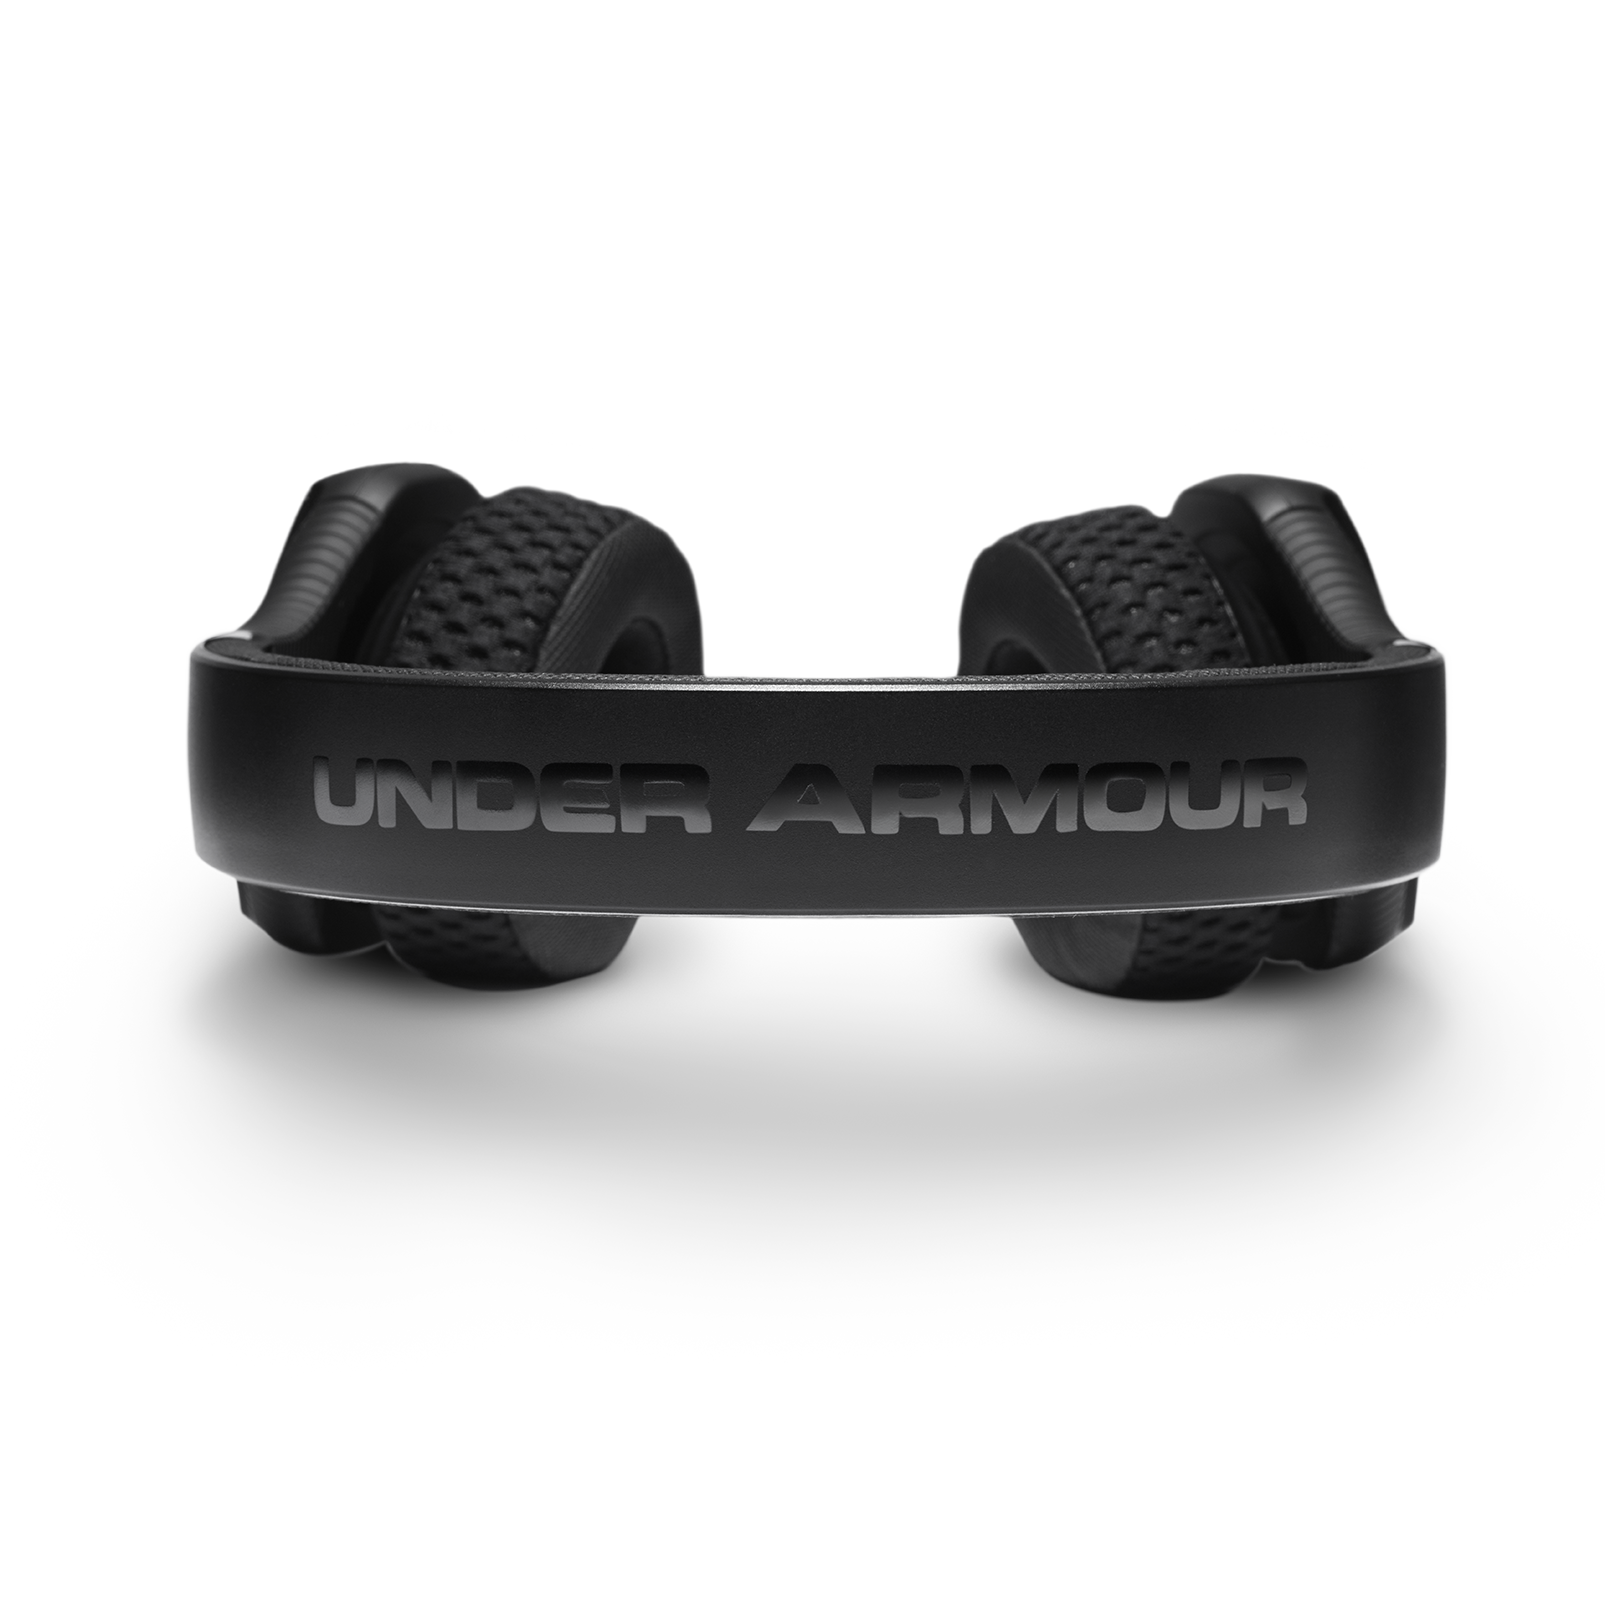 UA Sport Wireless Train – Engineered by JBL - Black / Red - Wireless on-ear headphone built for the gym - Detailshot 4